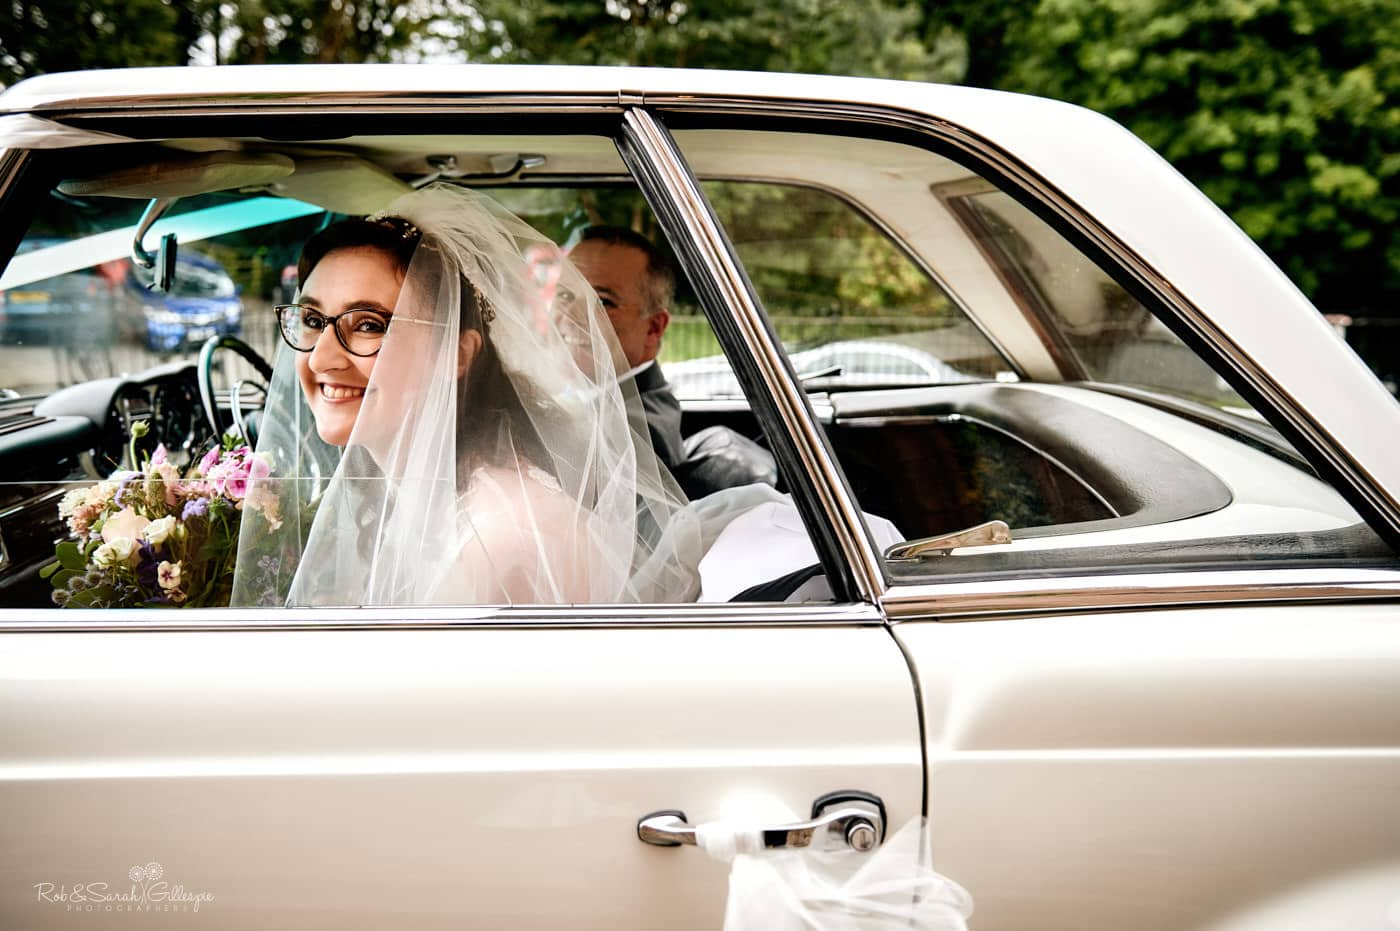 Bride smiling at bridesmaids as she arrives for wedding at Hanbury Church